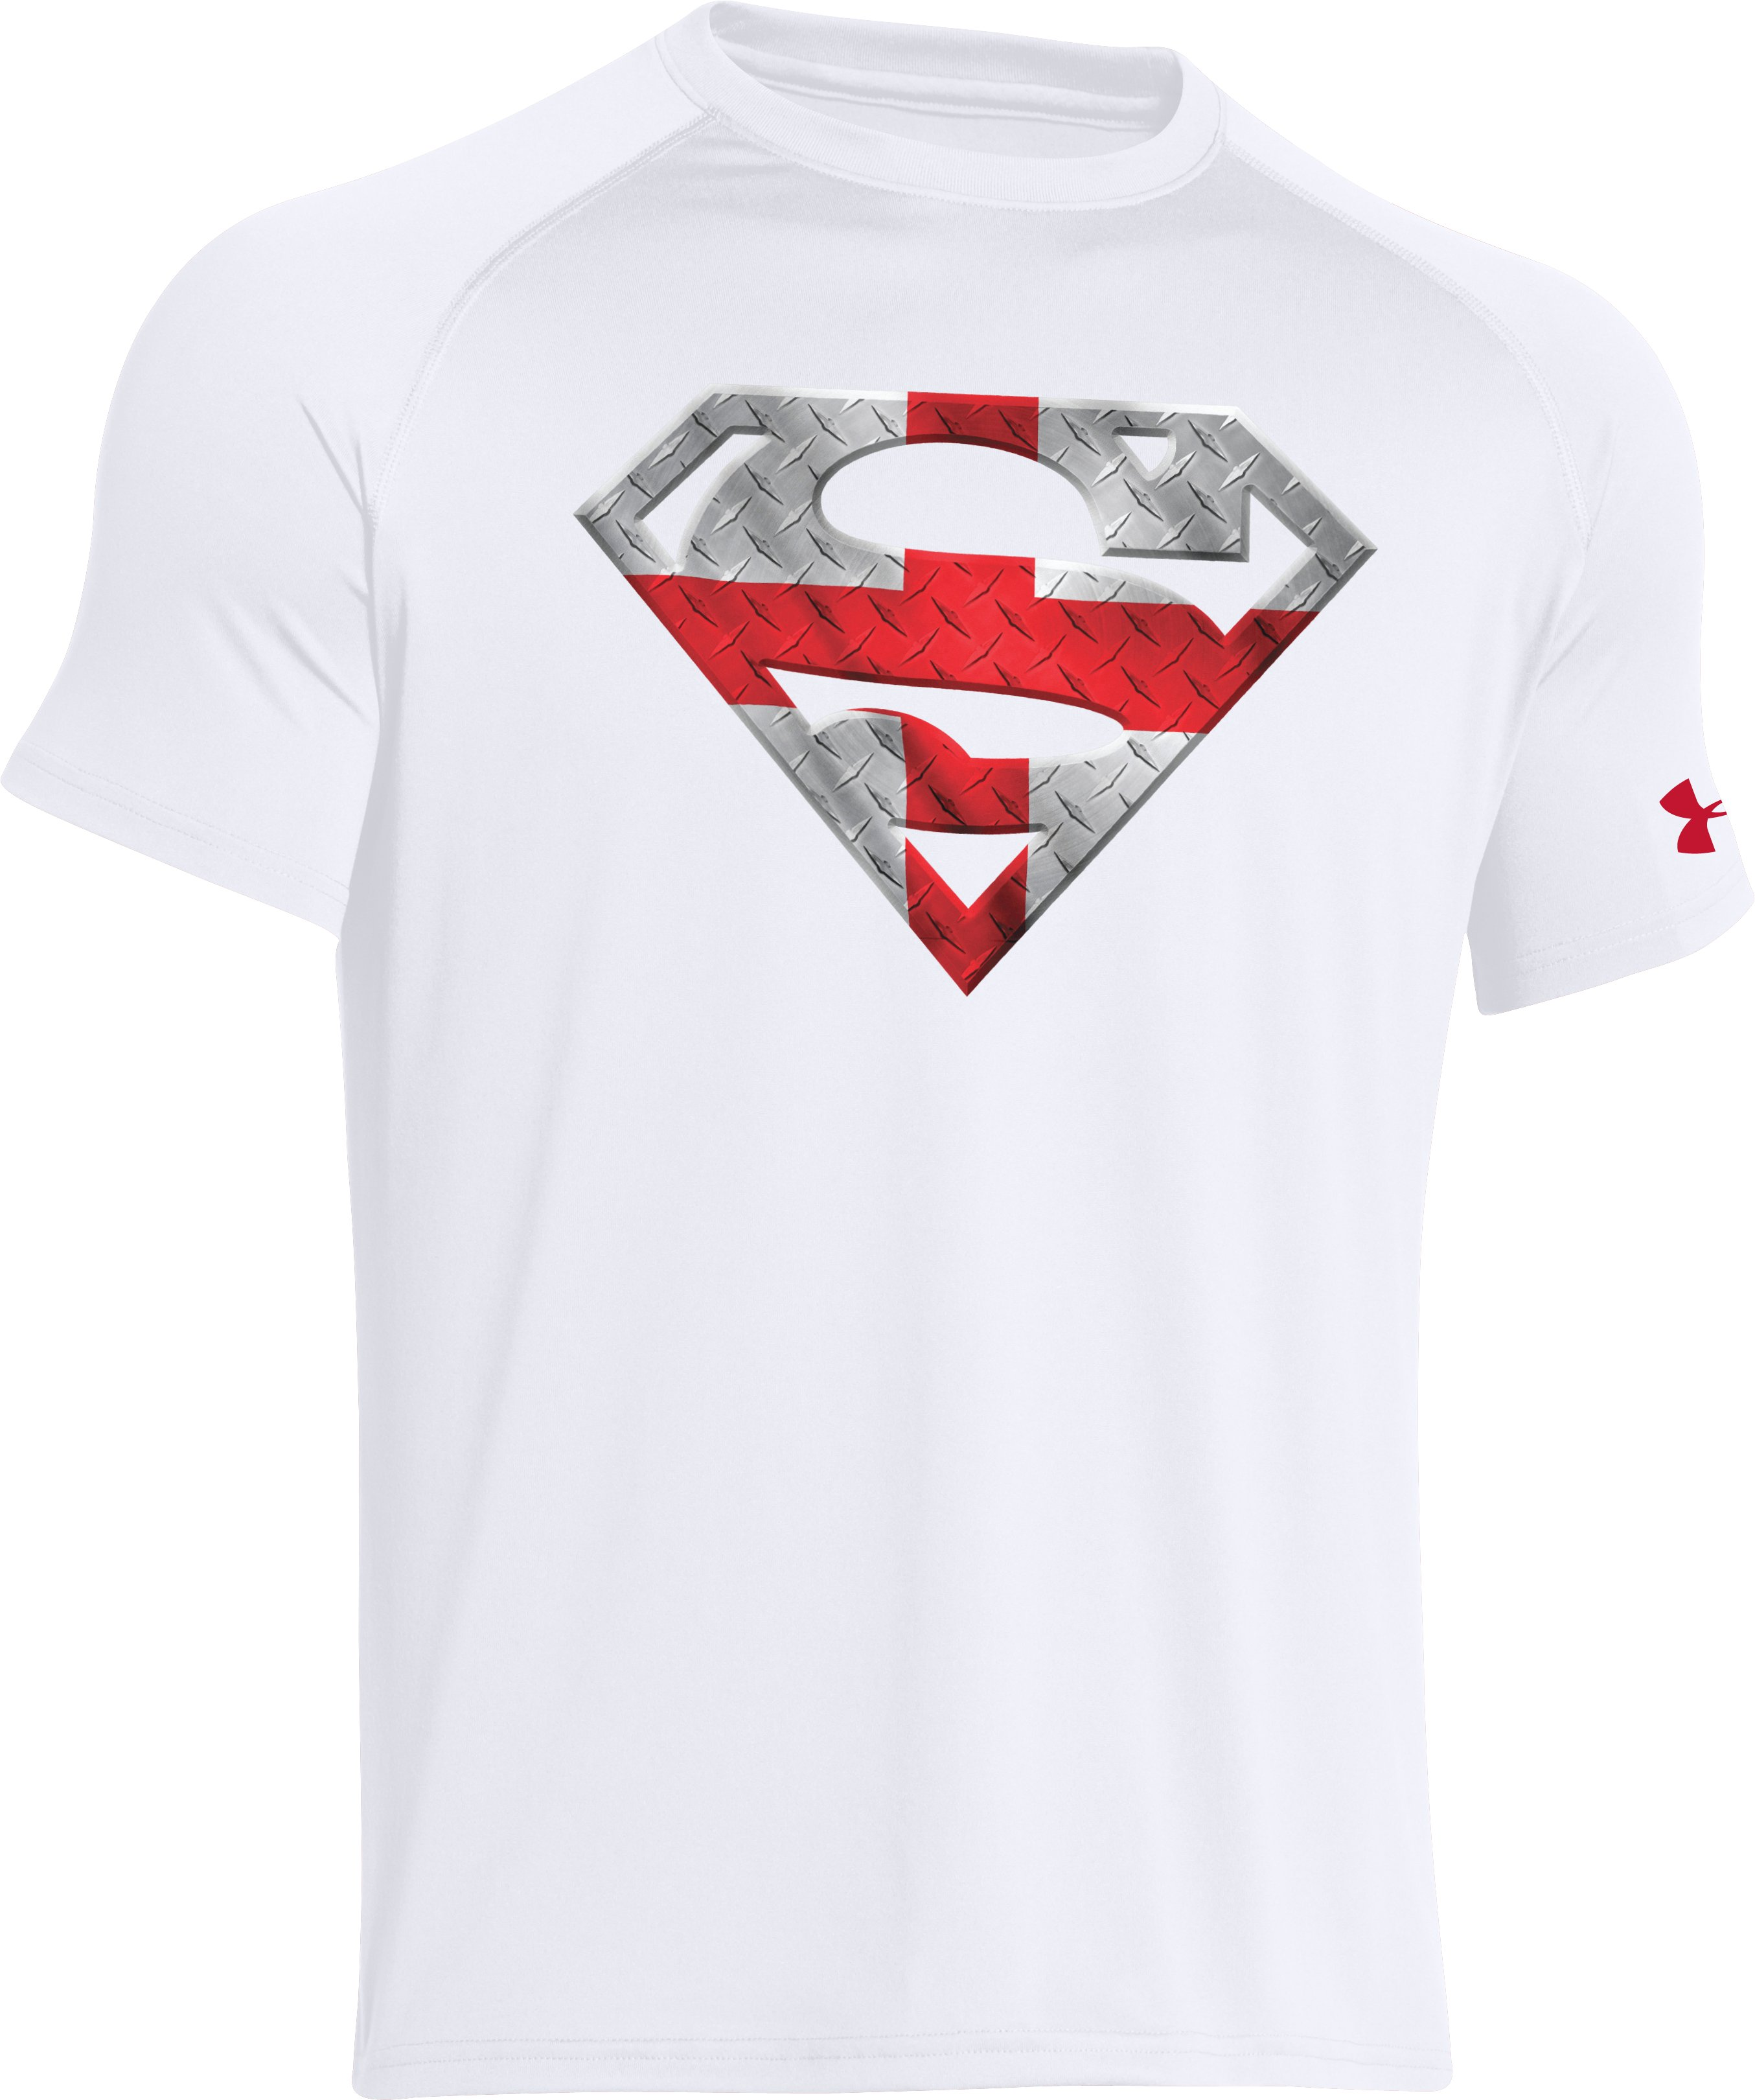 Men's England Under Armour® Alter Ego Superman T-Shirt, White